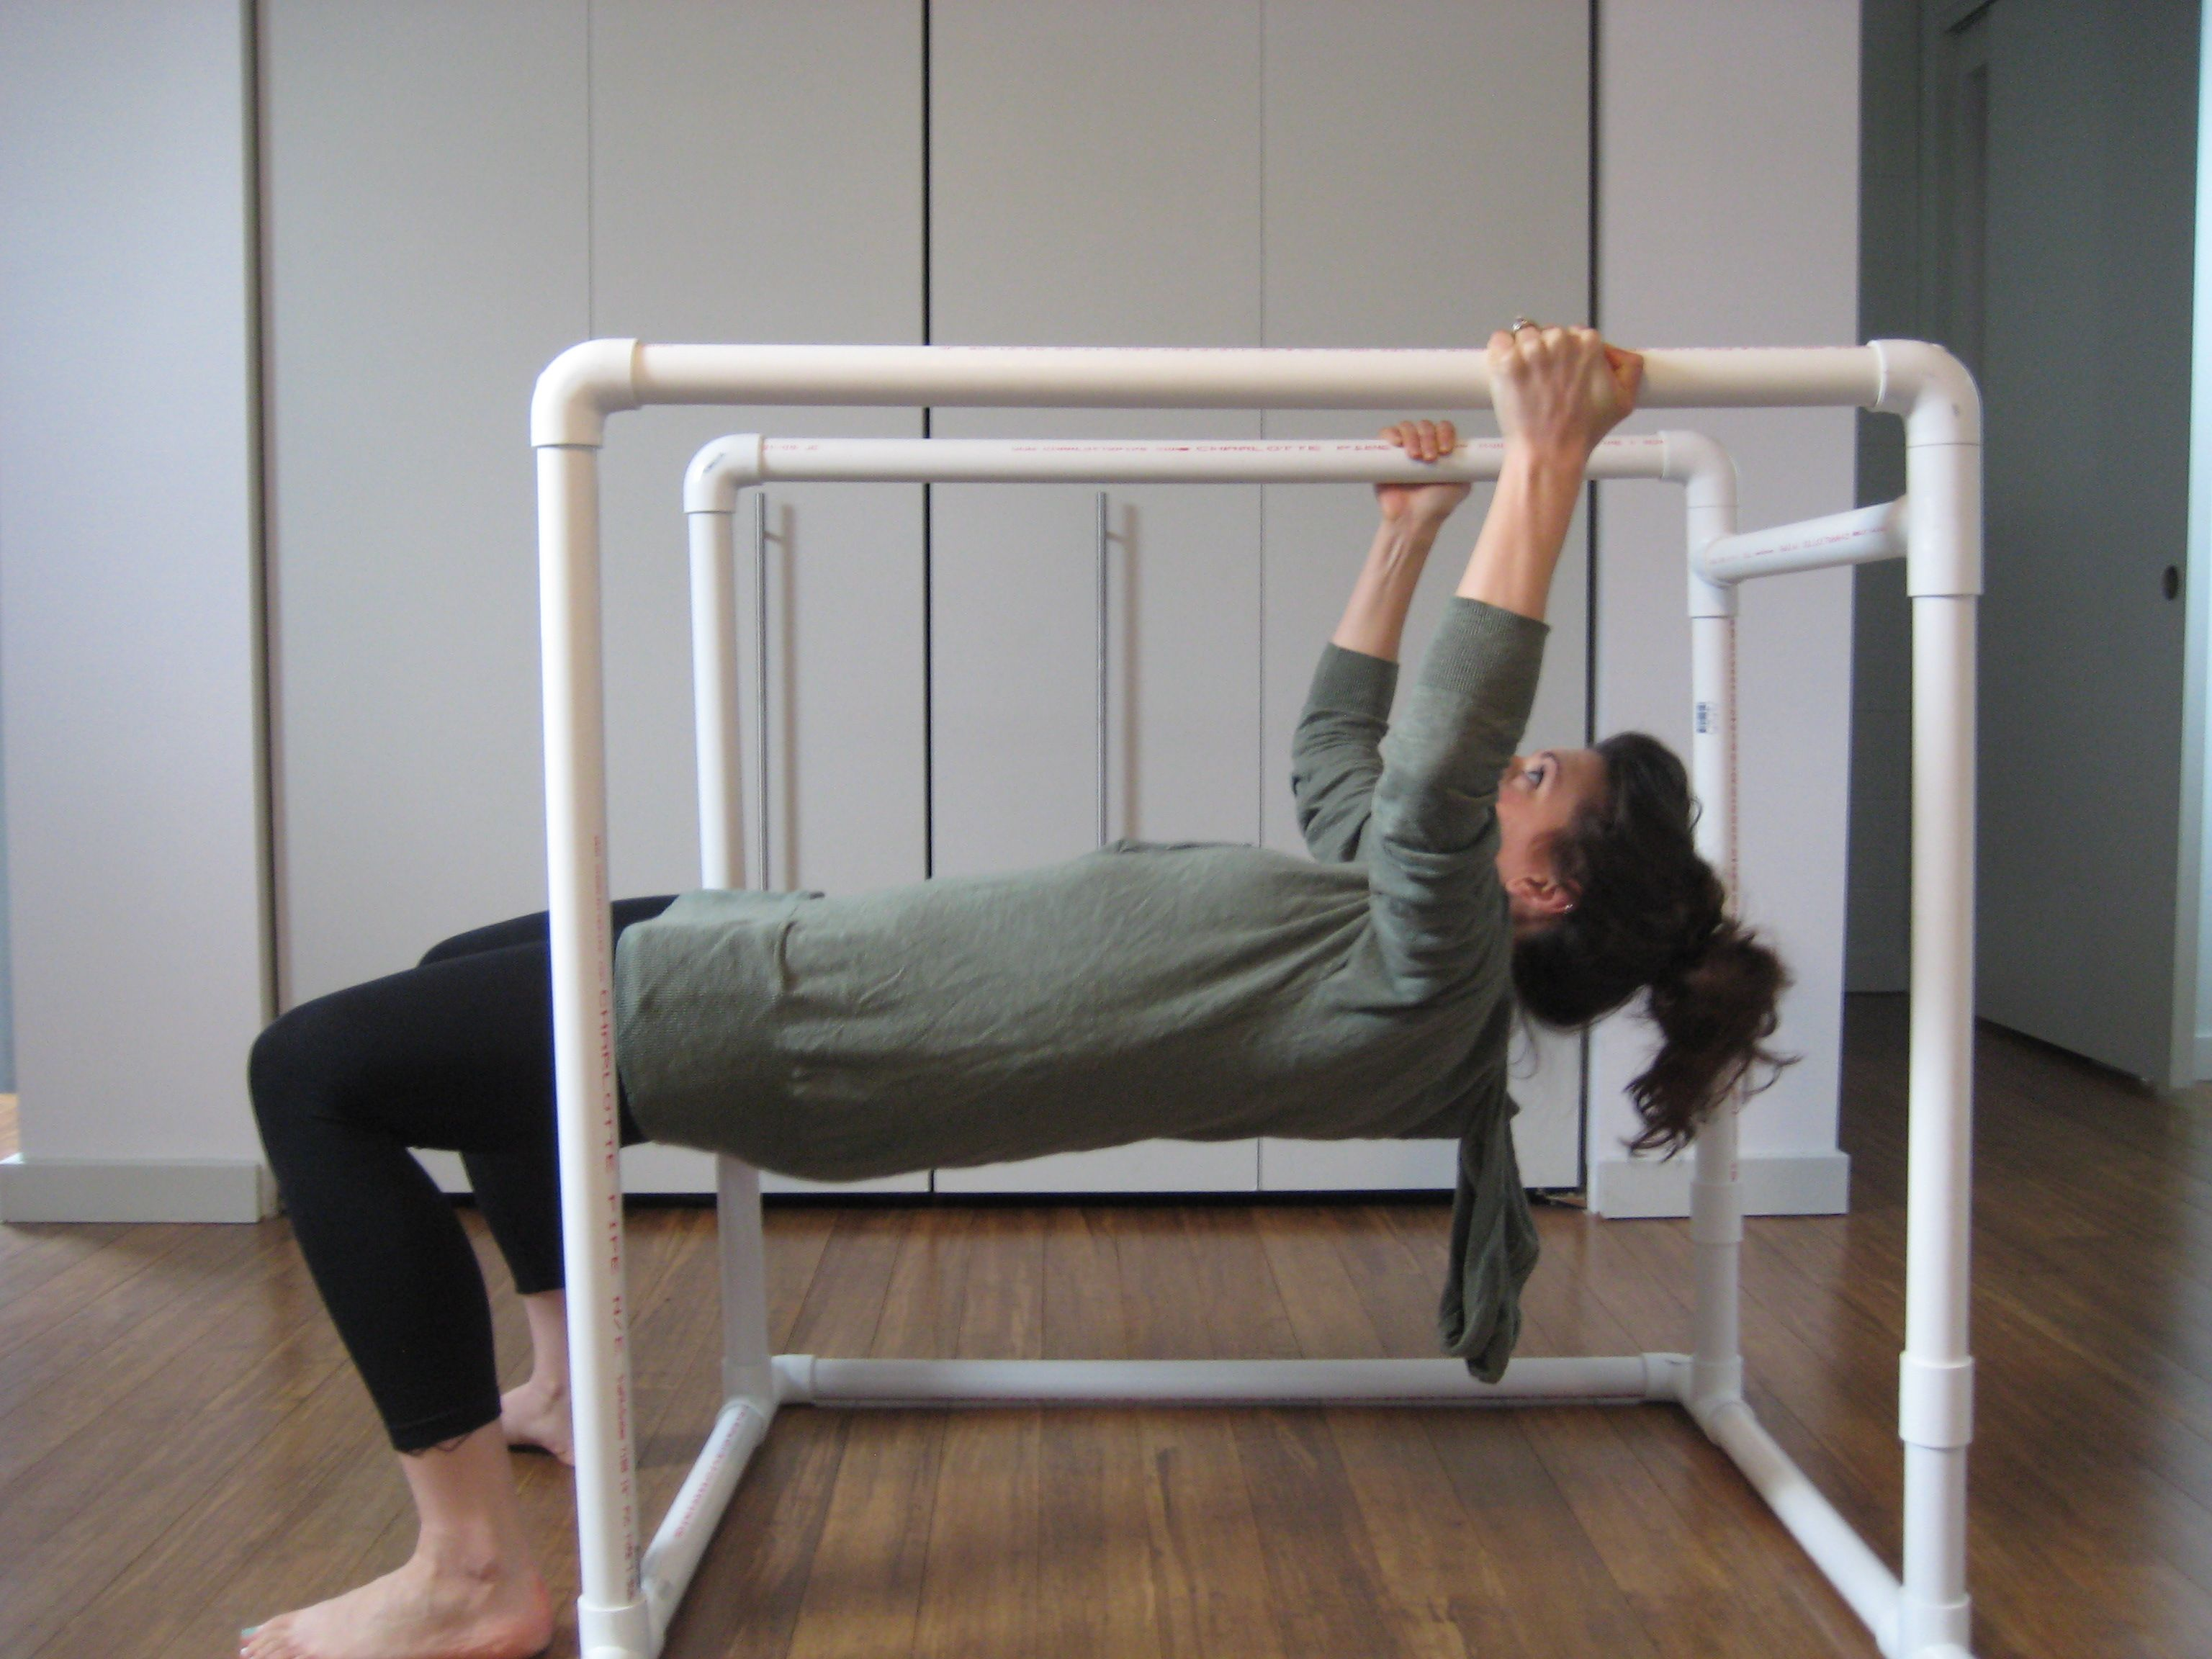 20 diys to make your workout prettier | 健身方法 | at home gym